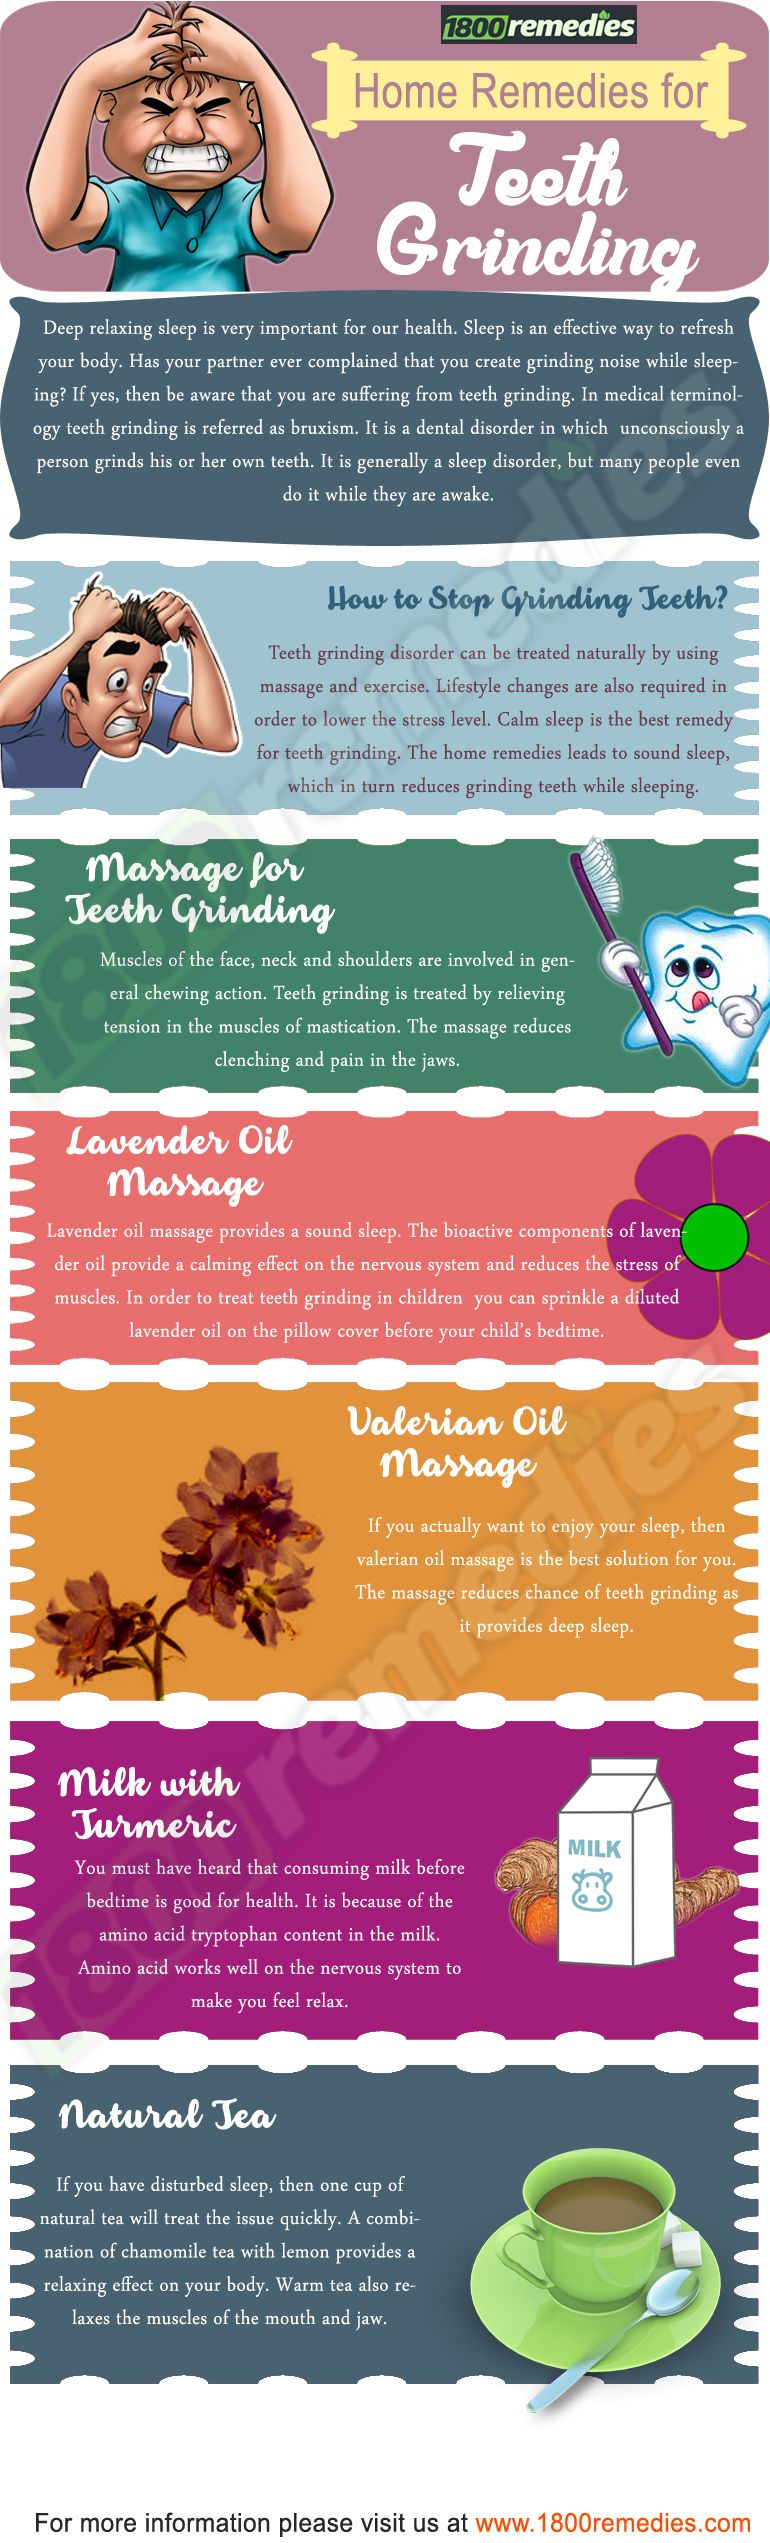 How to use YL essential oil for teeth grinding